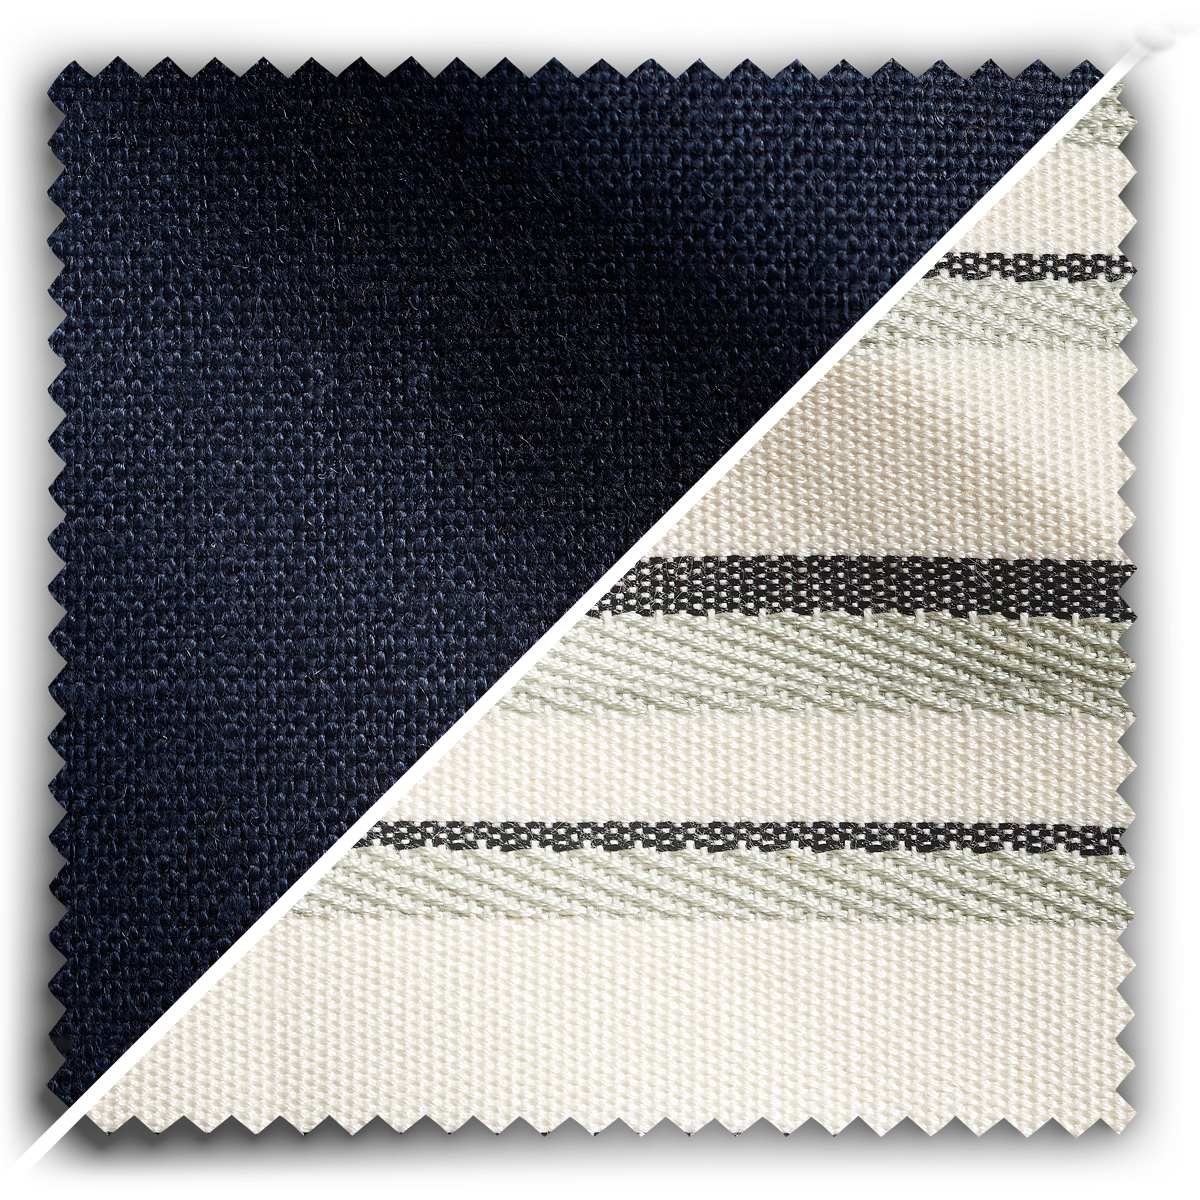 Image of Studio Stripes Midnight Blue Linen fabric